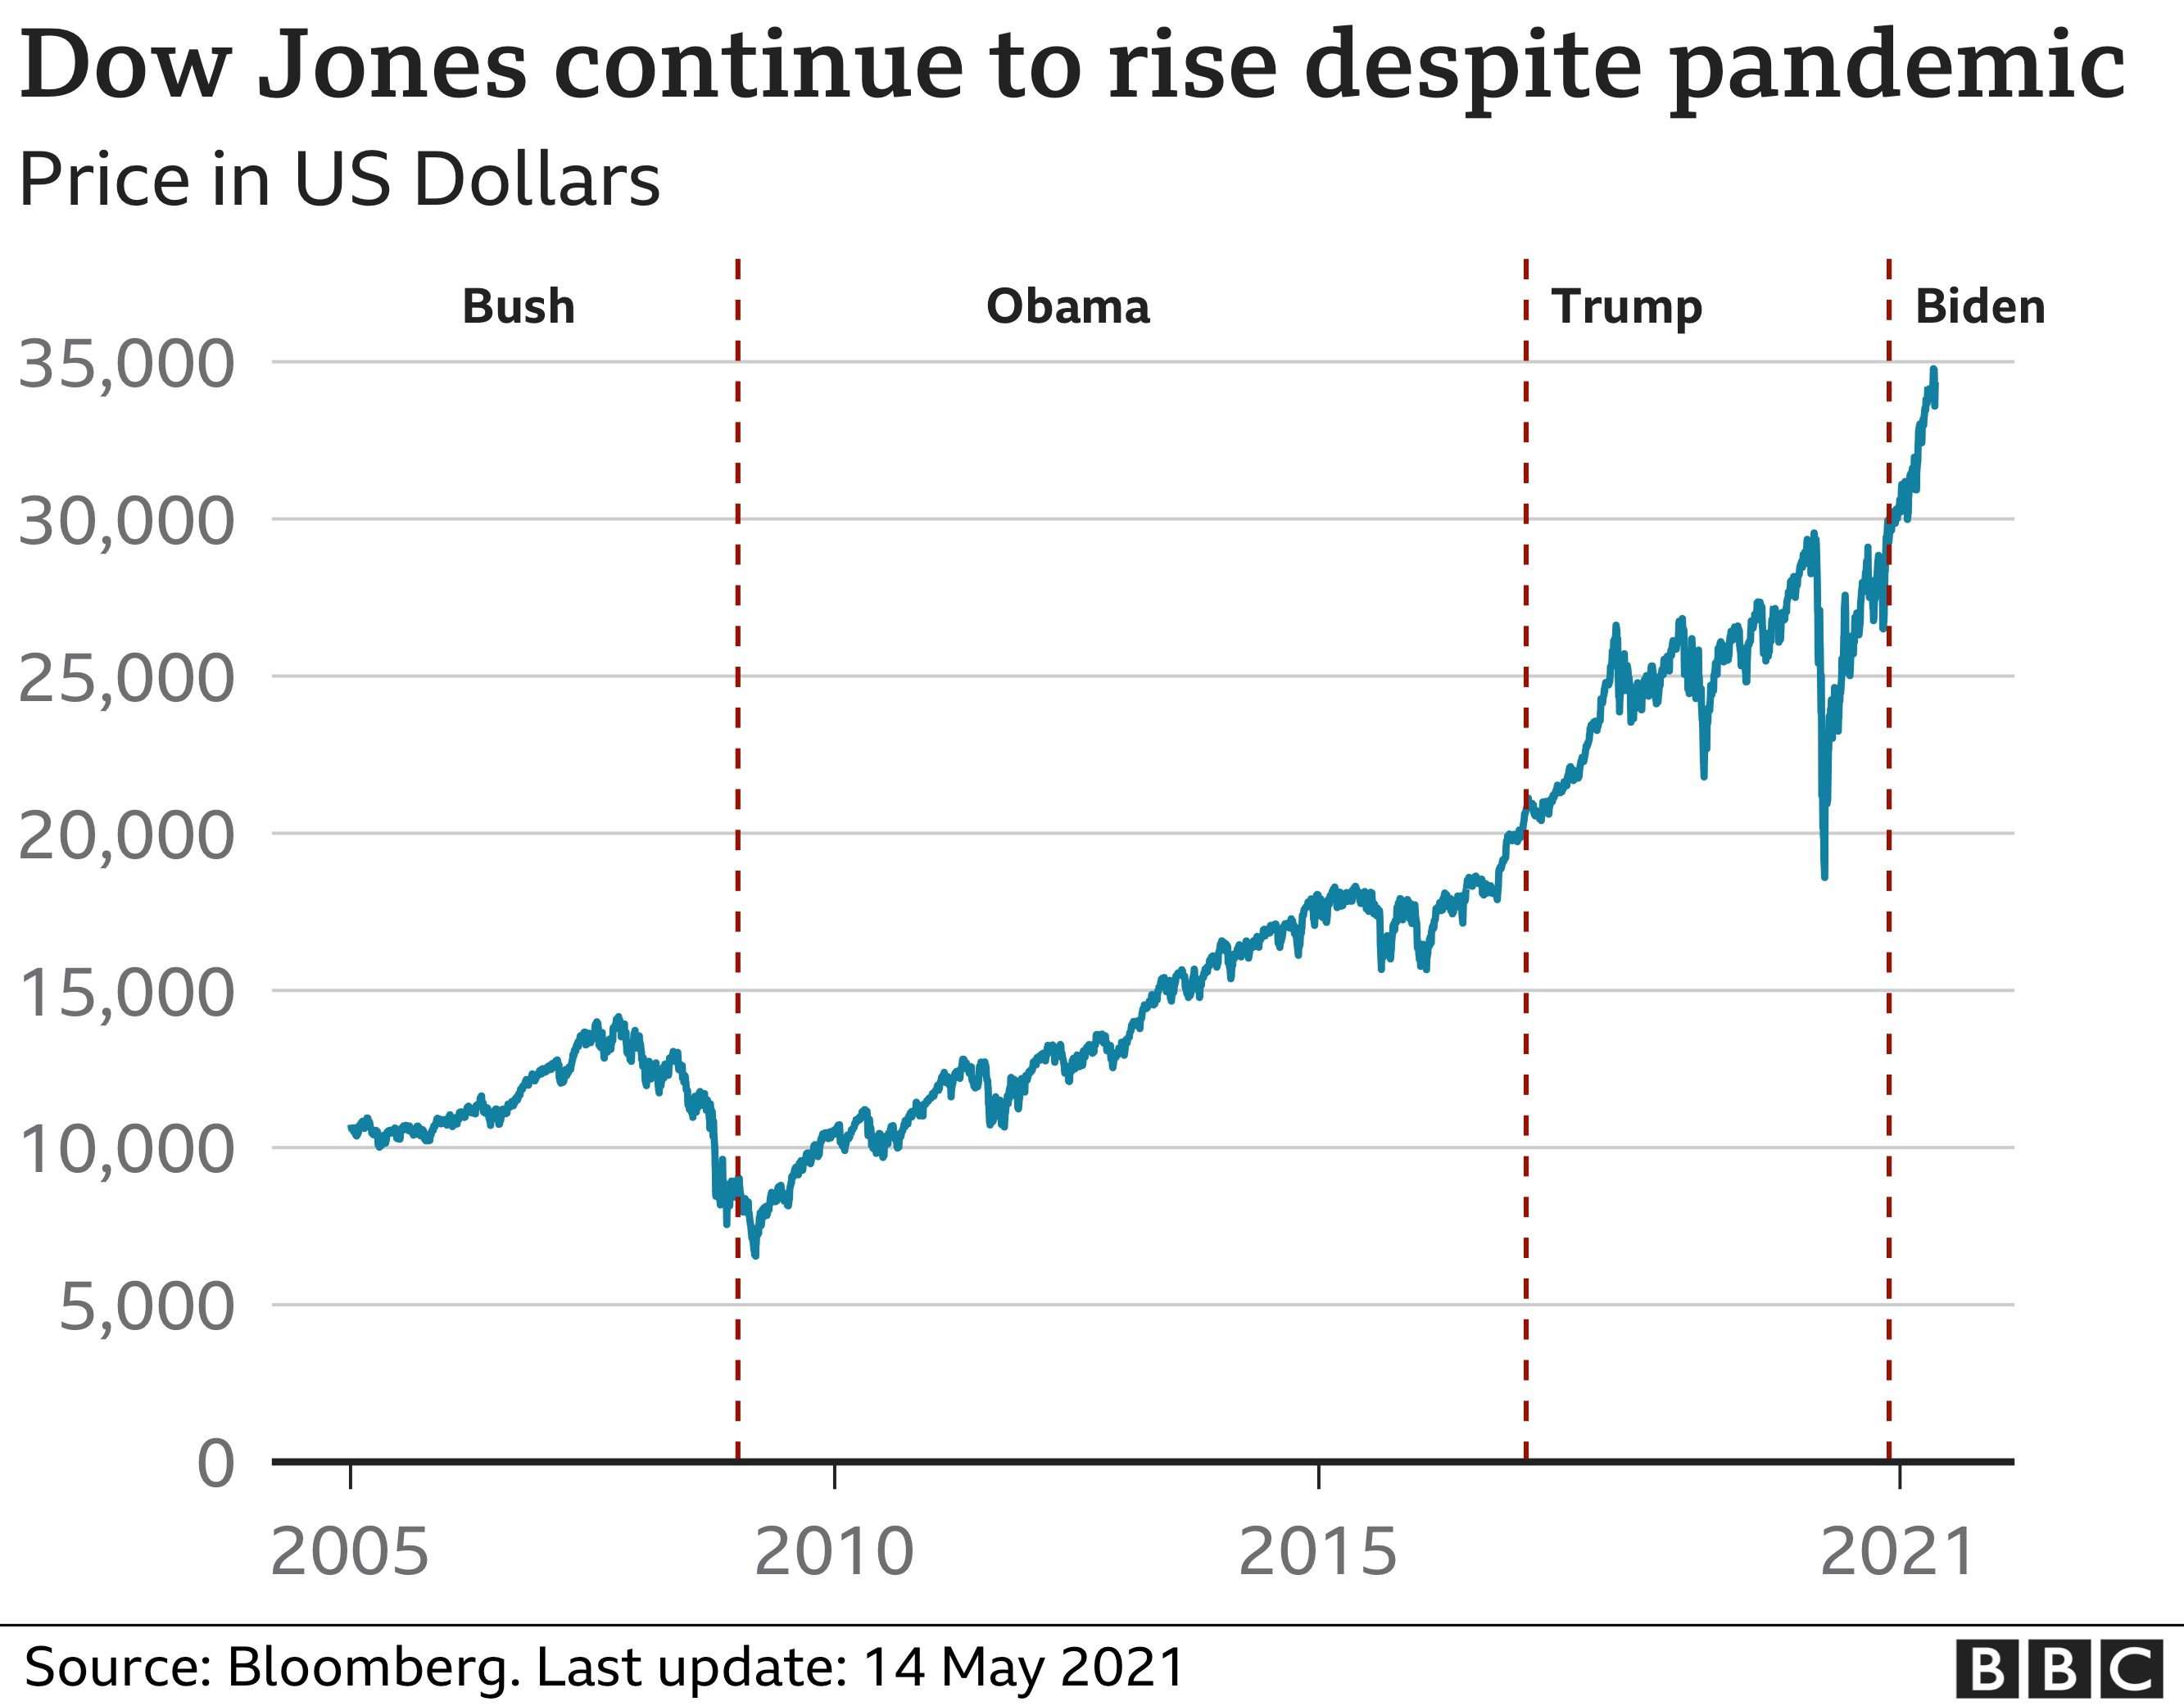 Dow Jones continues to rise